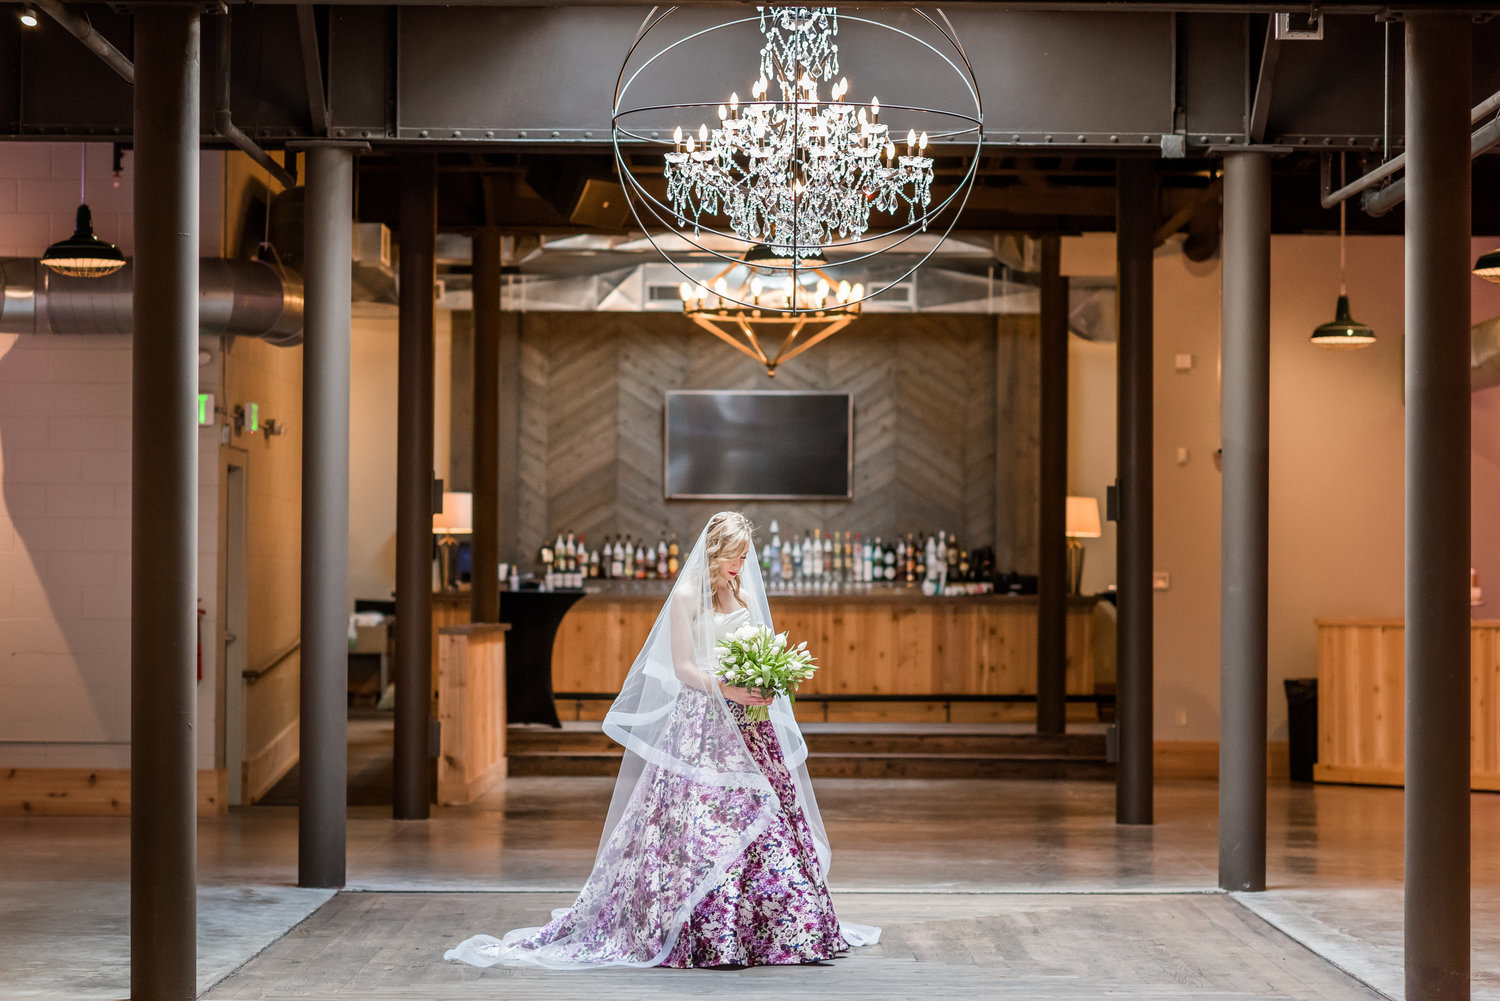 Milwaukees newest wedding venues weddings with a twist llc milwaukees newest wedding venues junglespirit Image collections